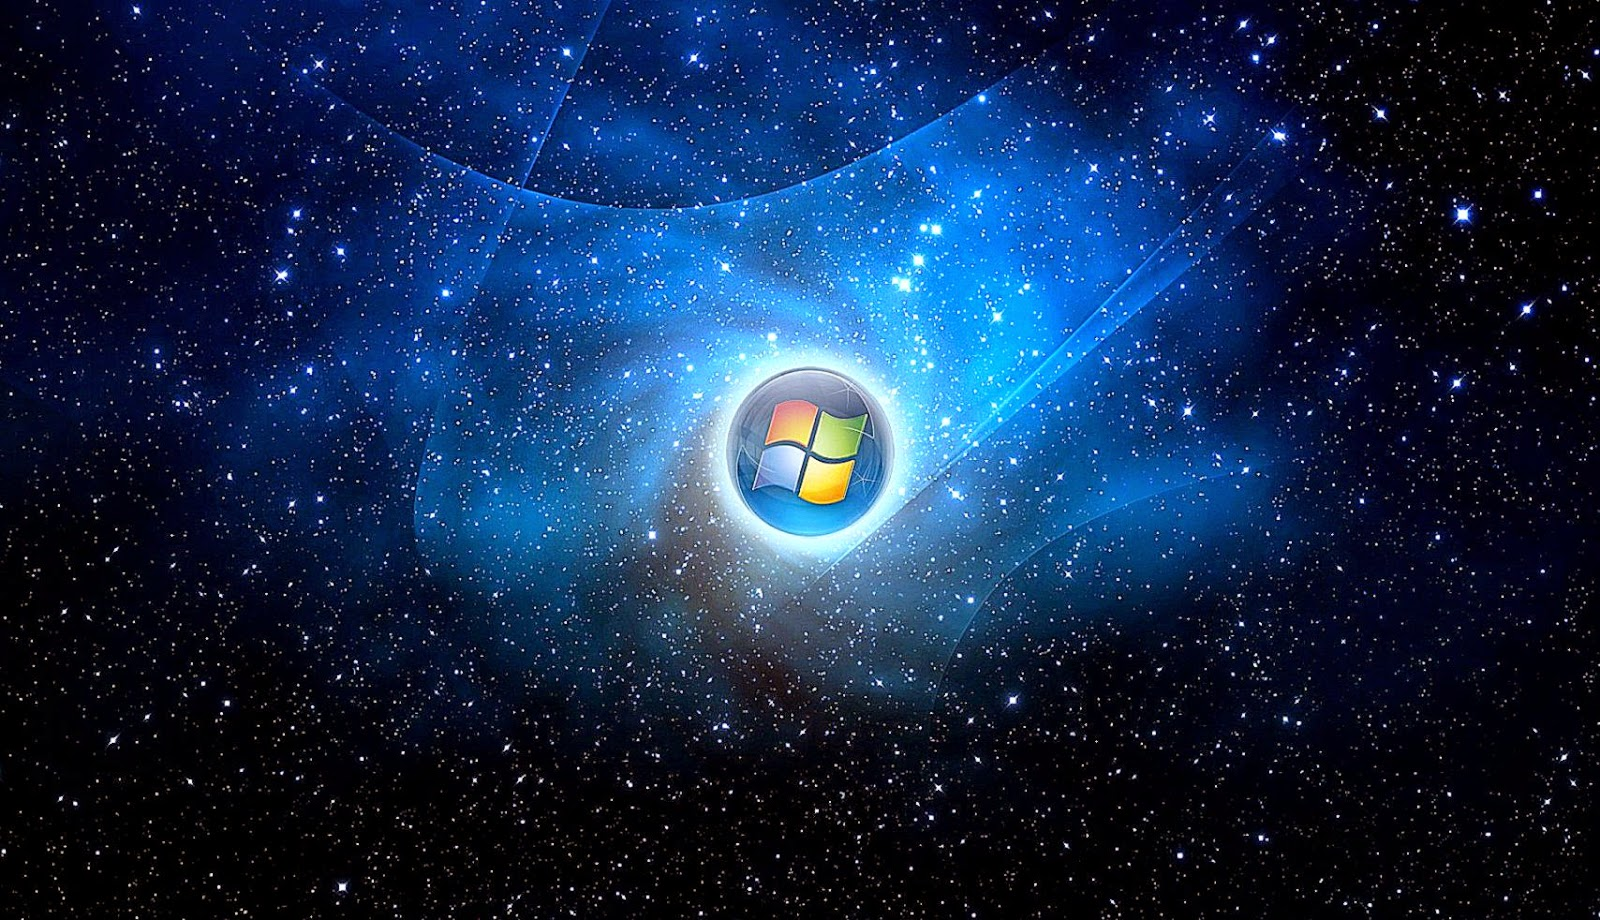 windows 7 animated wallpapers space wallpapersafari